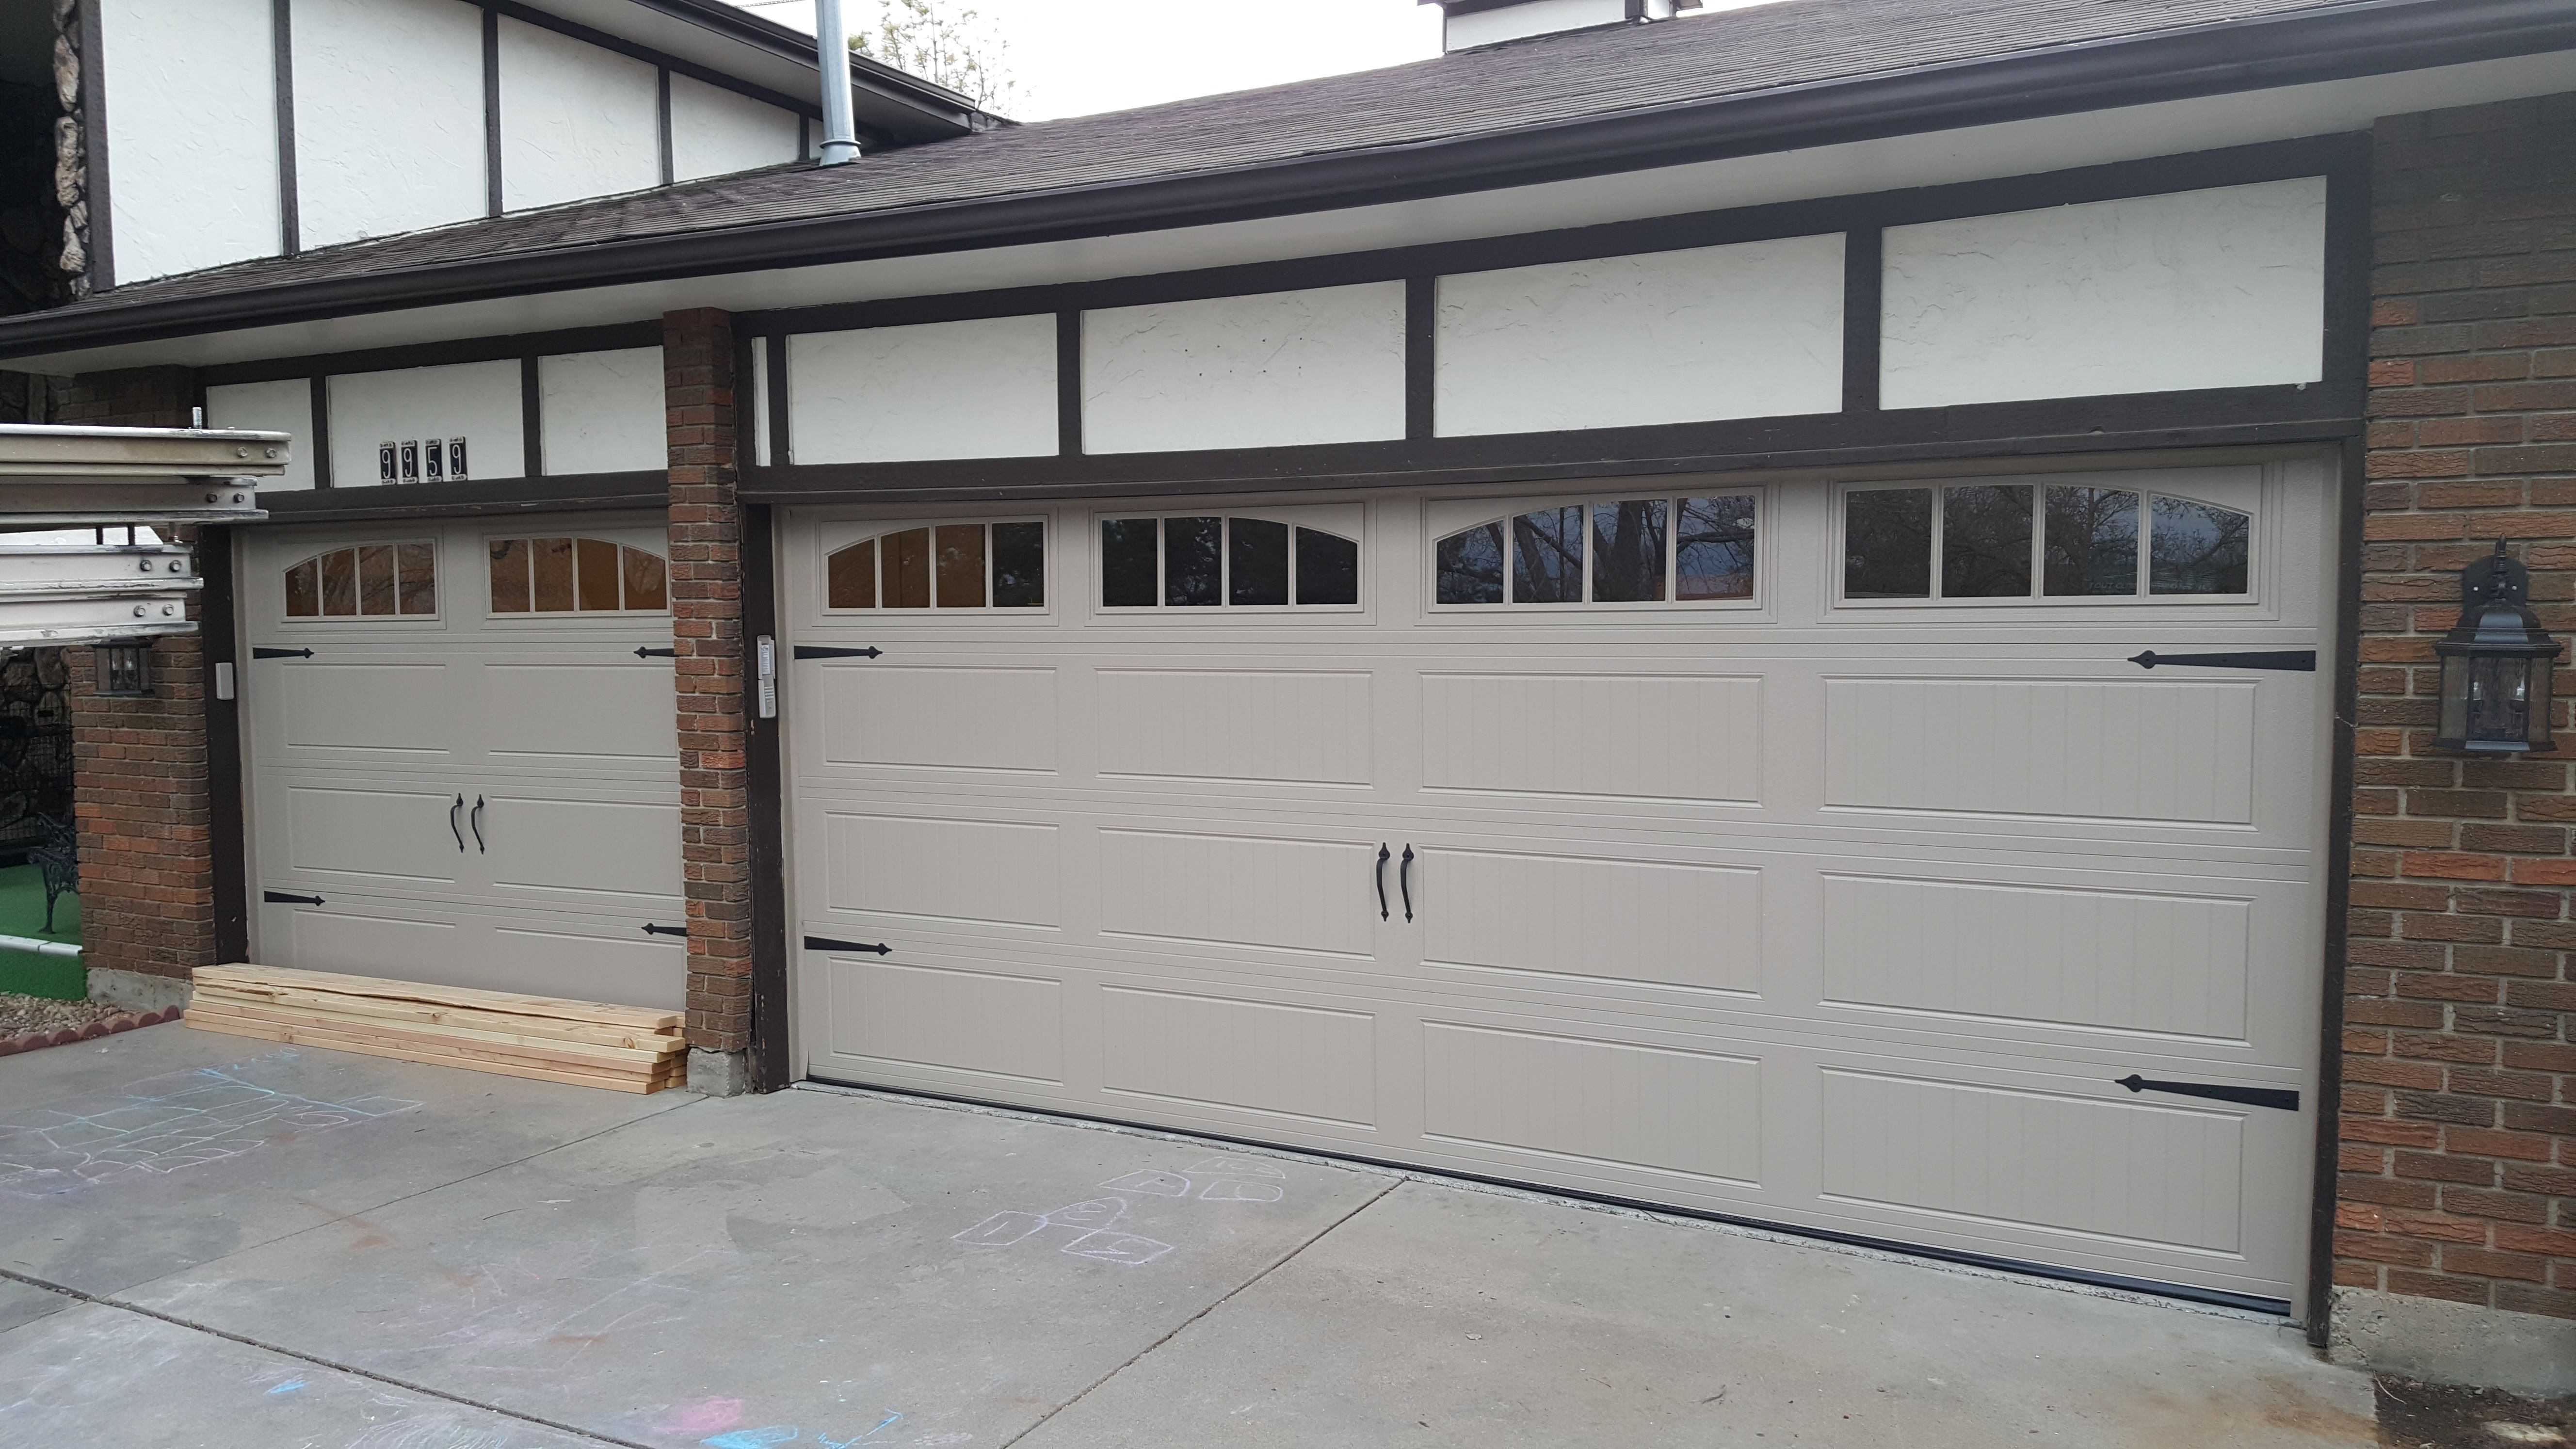 replace how t wisely garage a new with replacing to tips install choose cost opener door